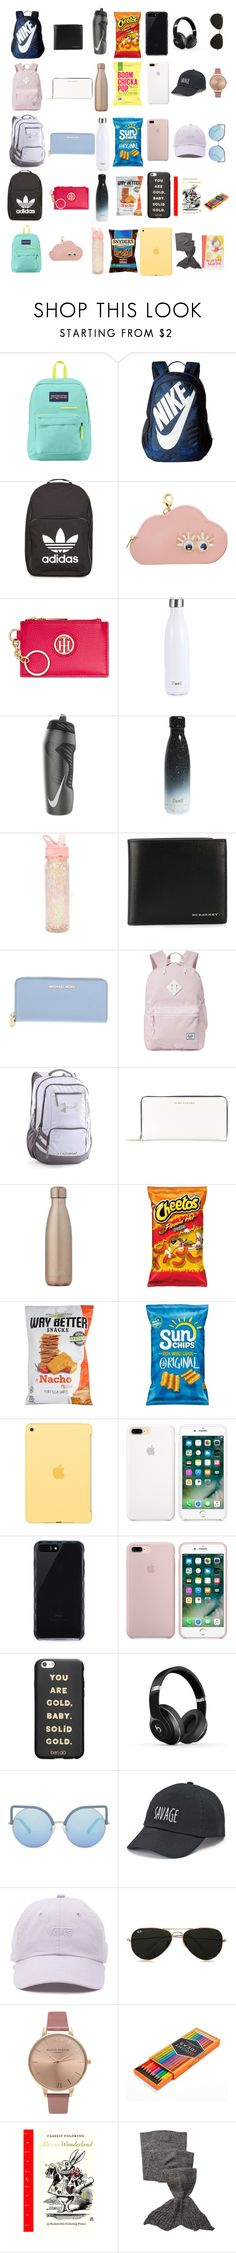 """""""Travel"""" by ale-needam on Polyvore featuring JanSport, NIKE, adidas, Sophie Hulme, Tommy Hilfiger, S'well, ban.do, Burberry, Michael Kors and Herschel Supply Co."""